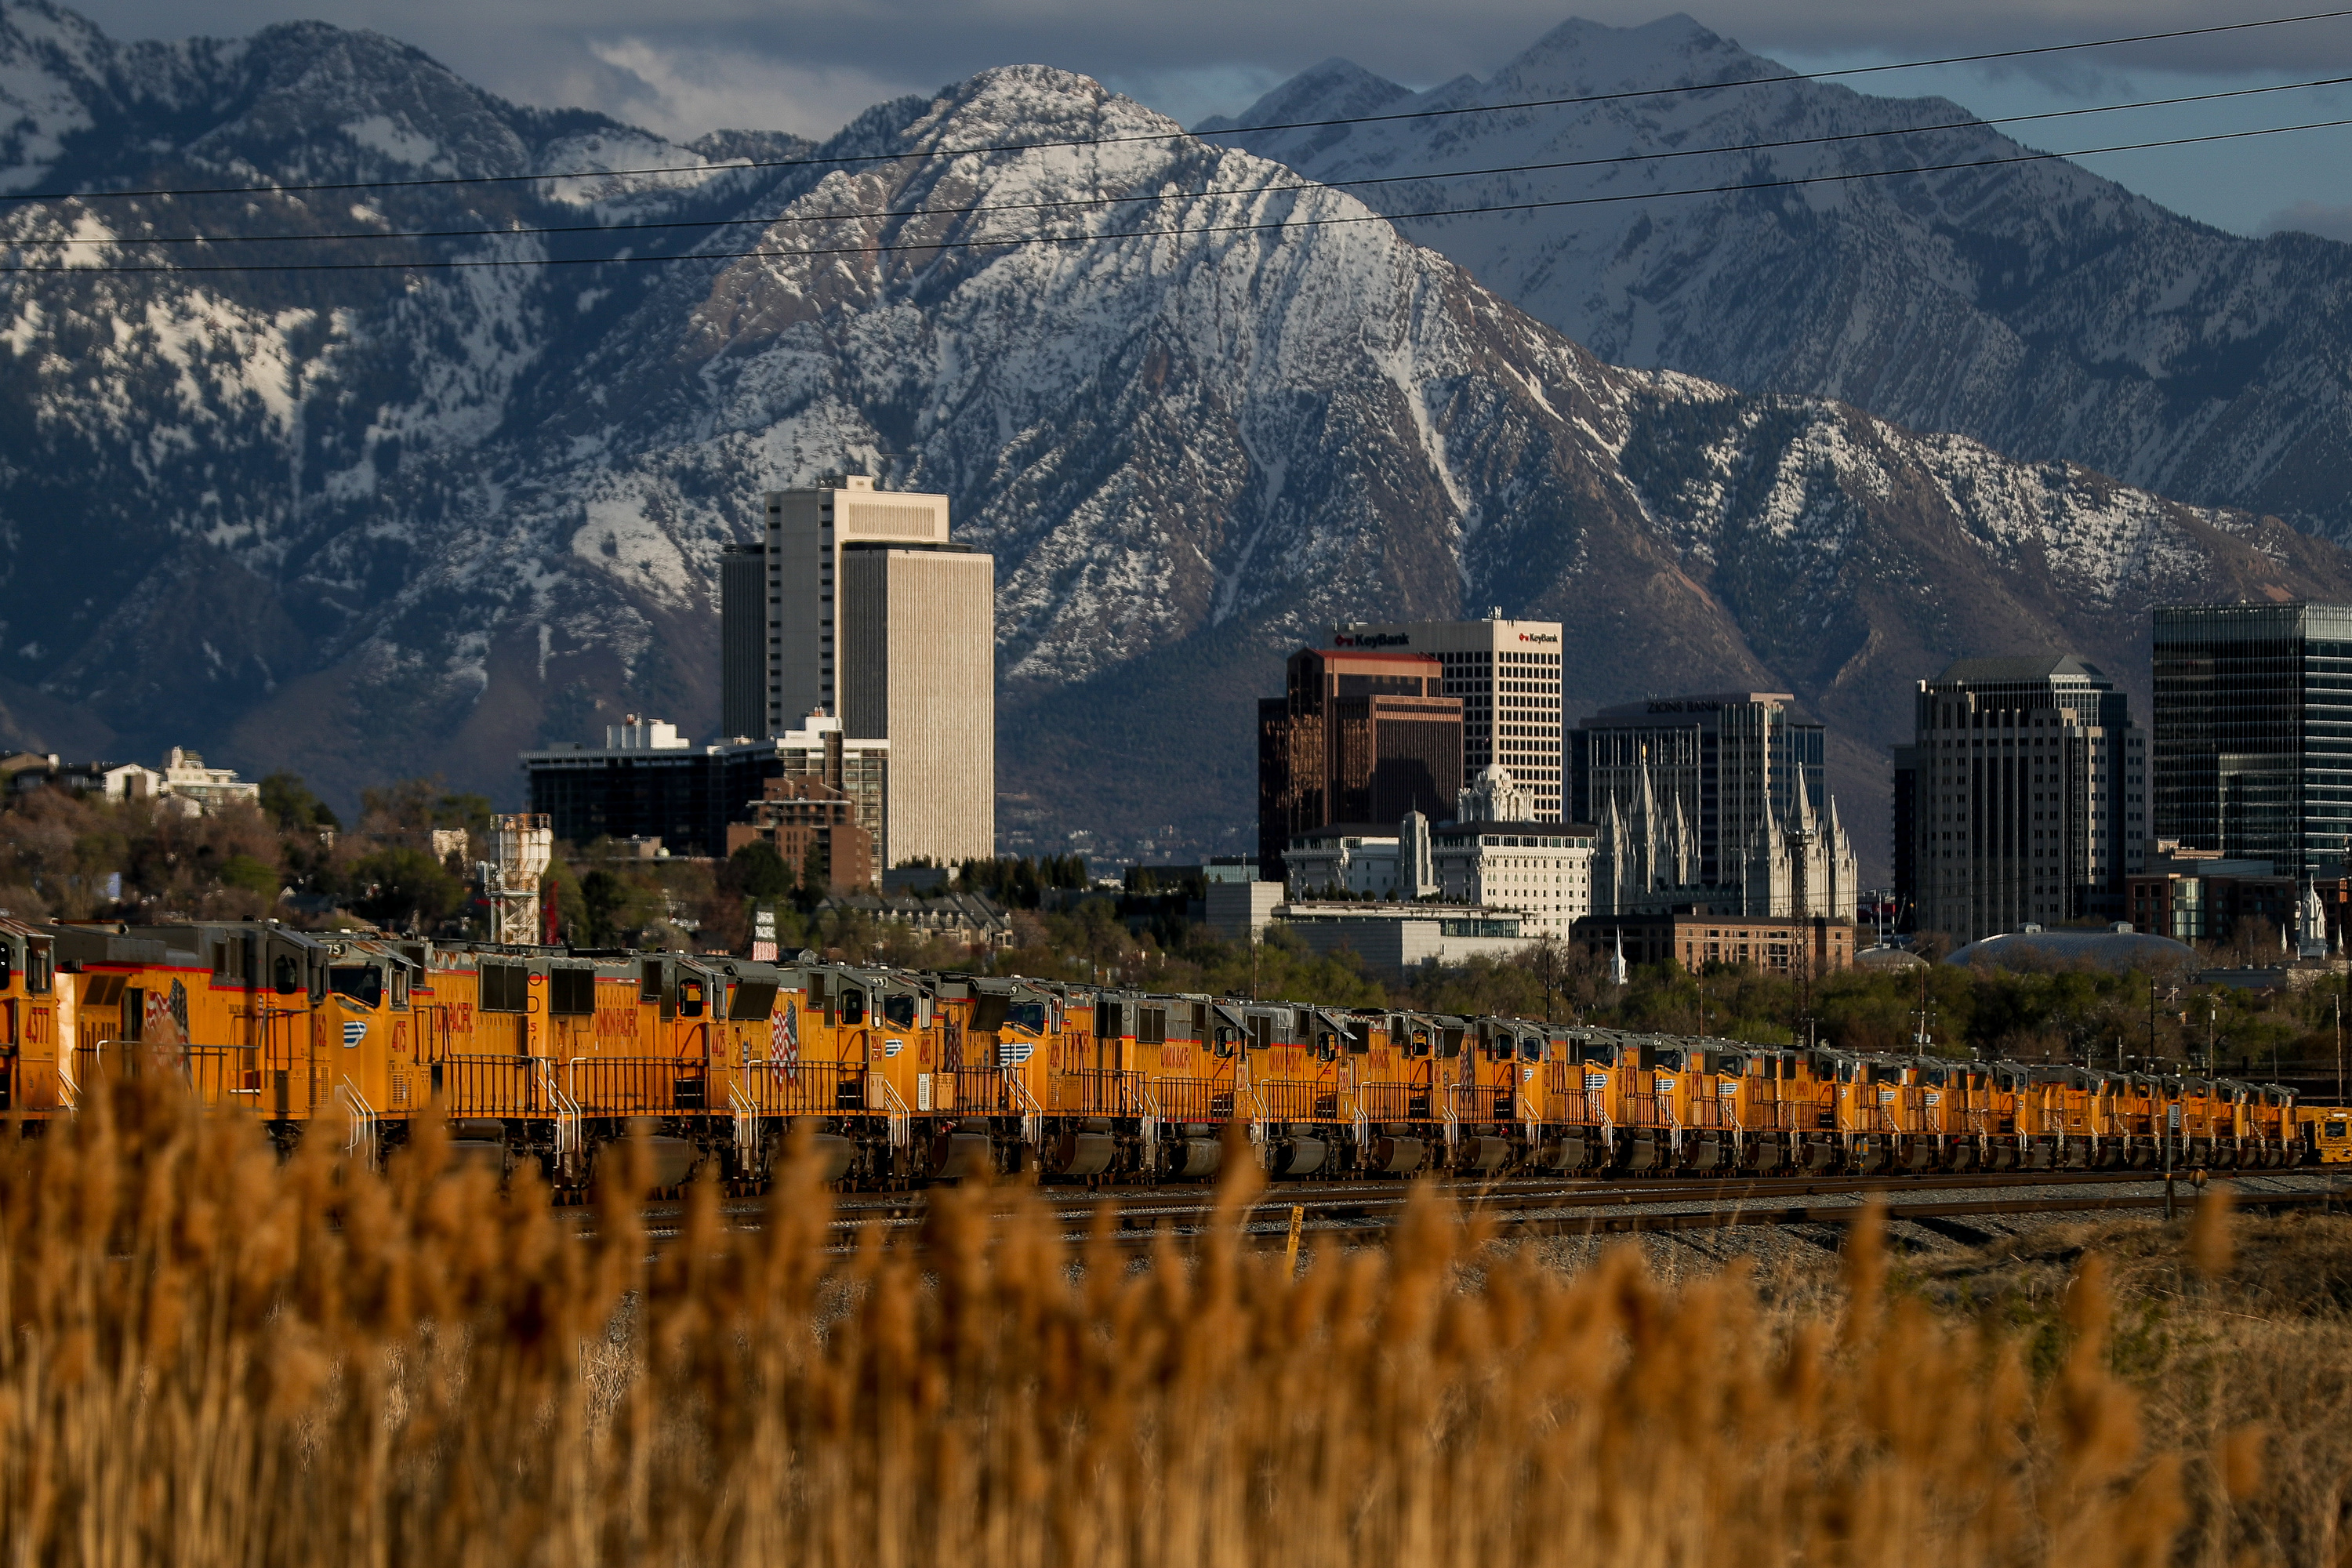 Union Pacific locomotives sit idle in a rail yard north of downtown Salt Lake City on Tuesday, April 7, 2020.